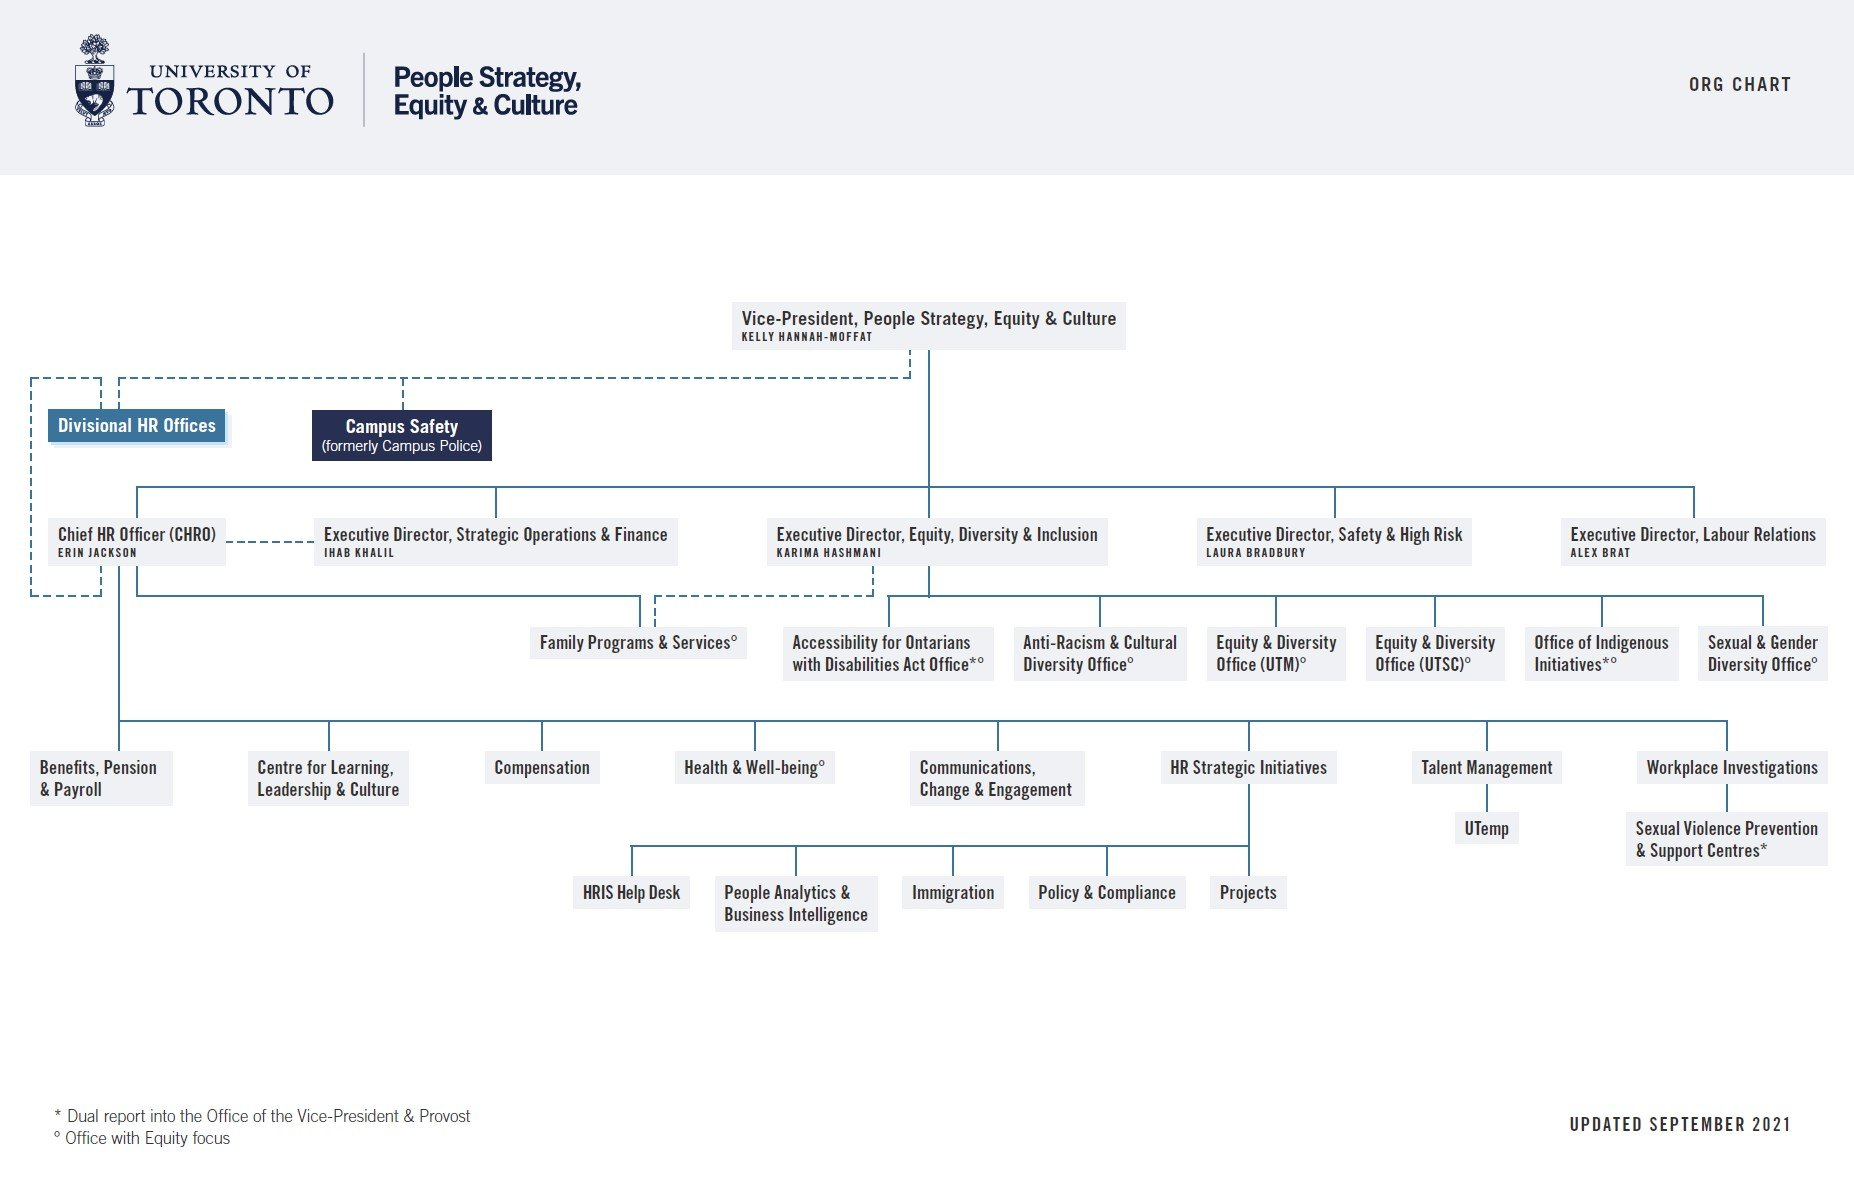 People Strategy, Equity & Culture Organizational Chart